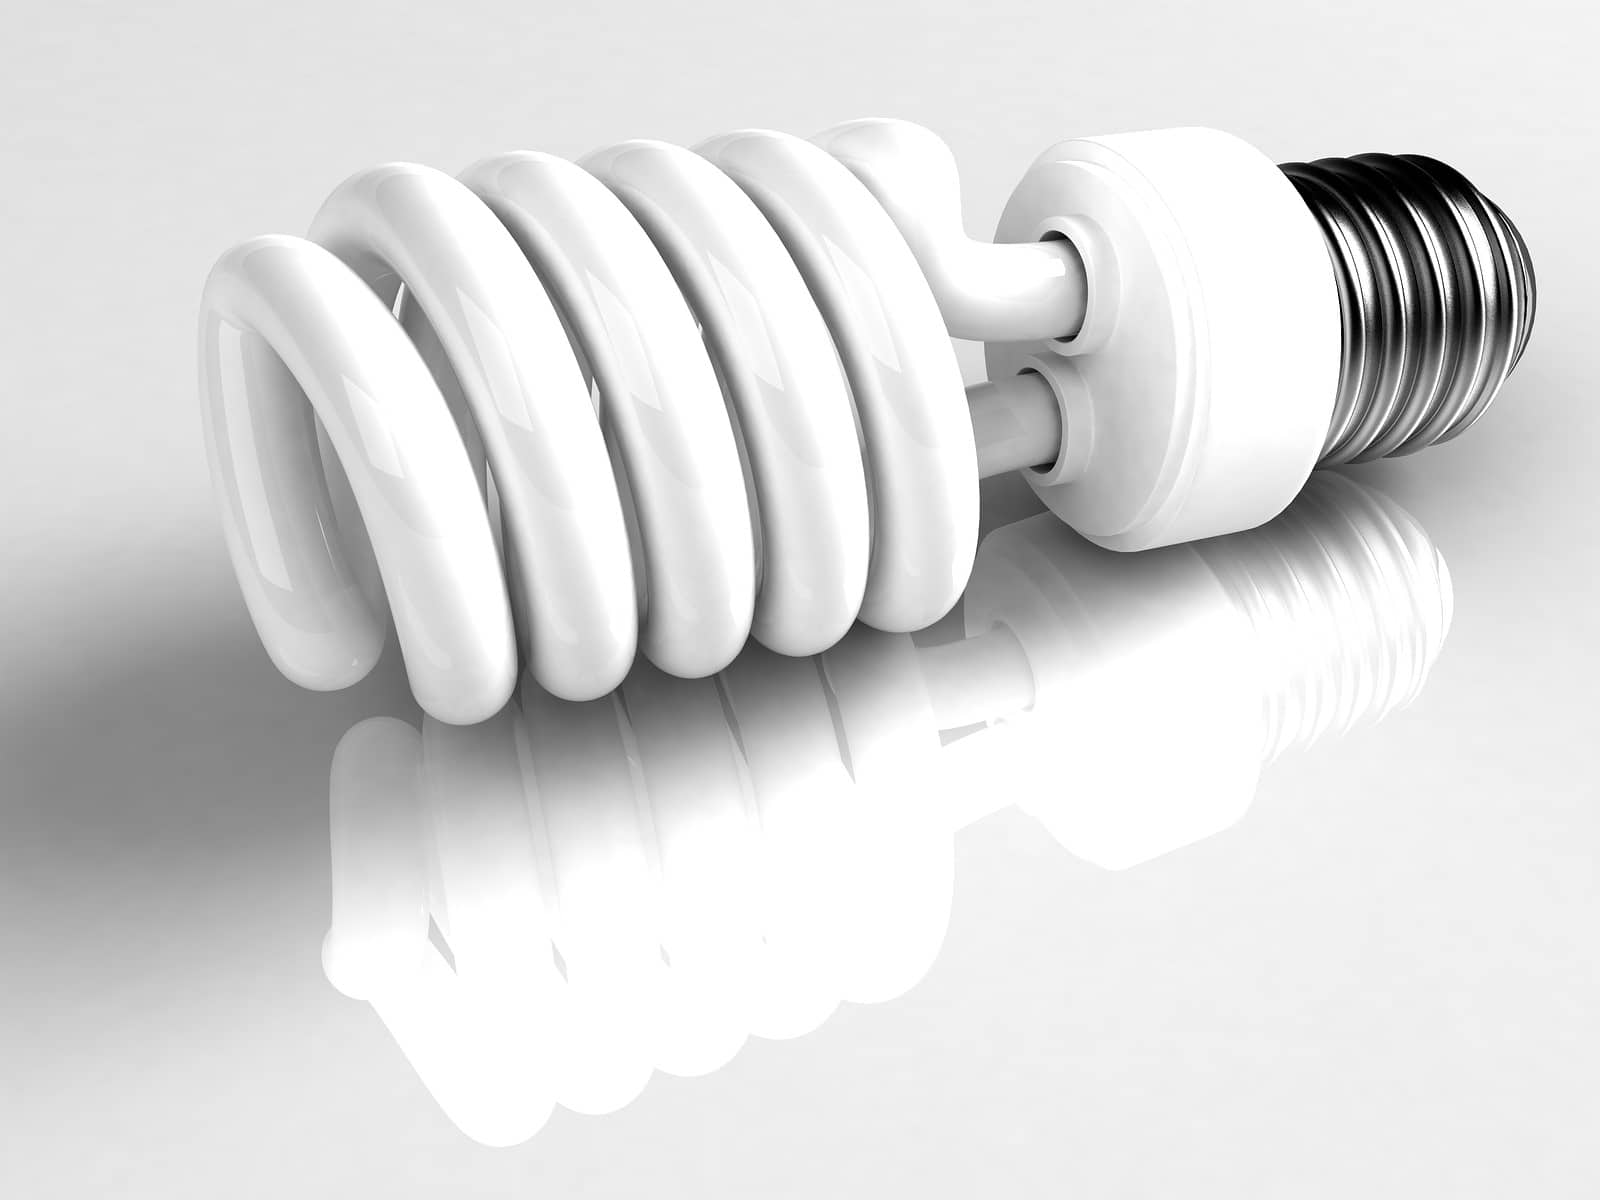 Fluorescent bulbs - Atypical things that can be recycled.